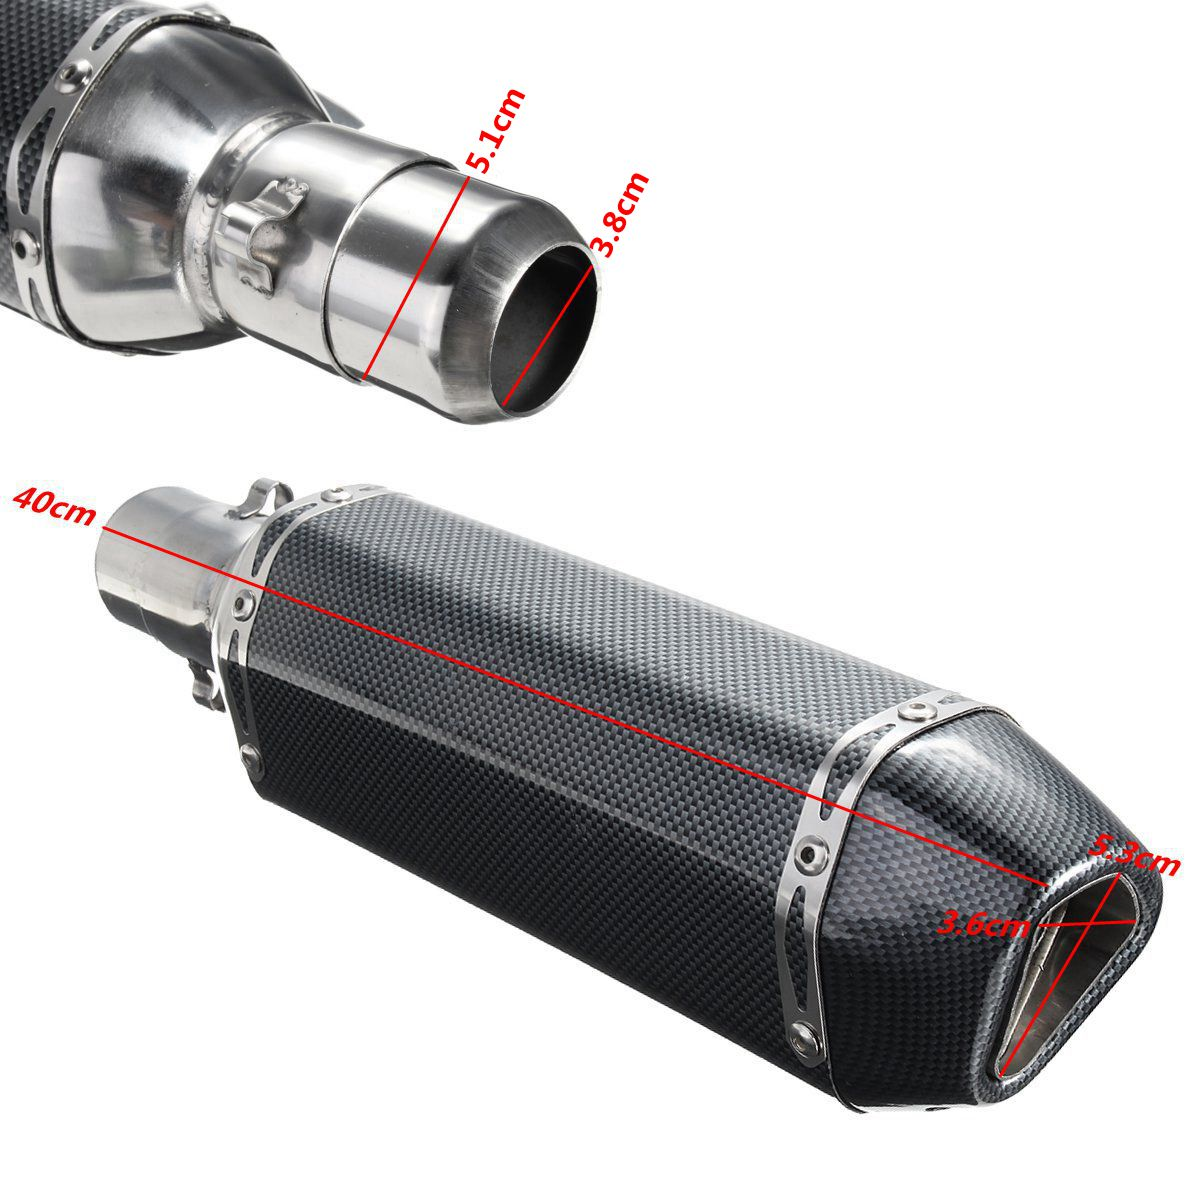 38-51mm Universal Stainless Steel Motorcycle Carbon Fiber Exhaust Muffler Pipe